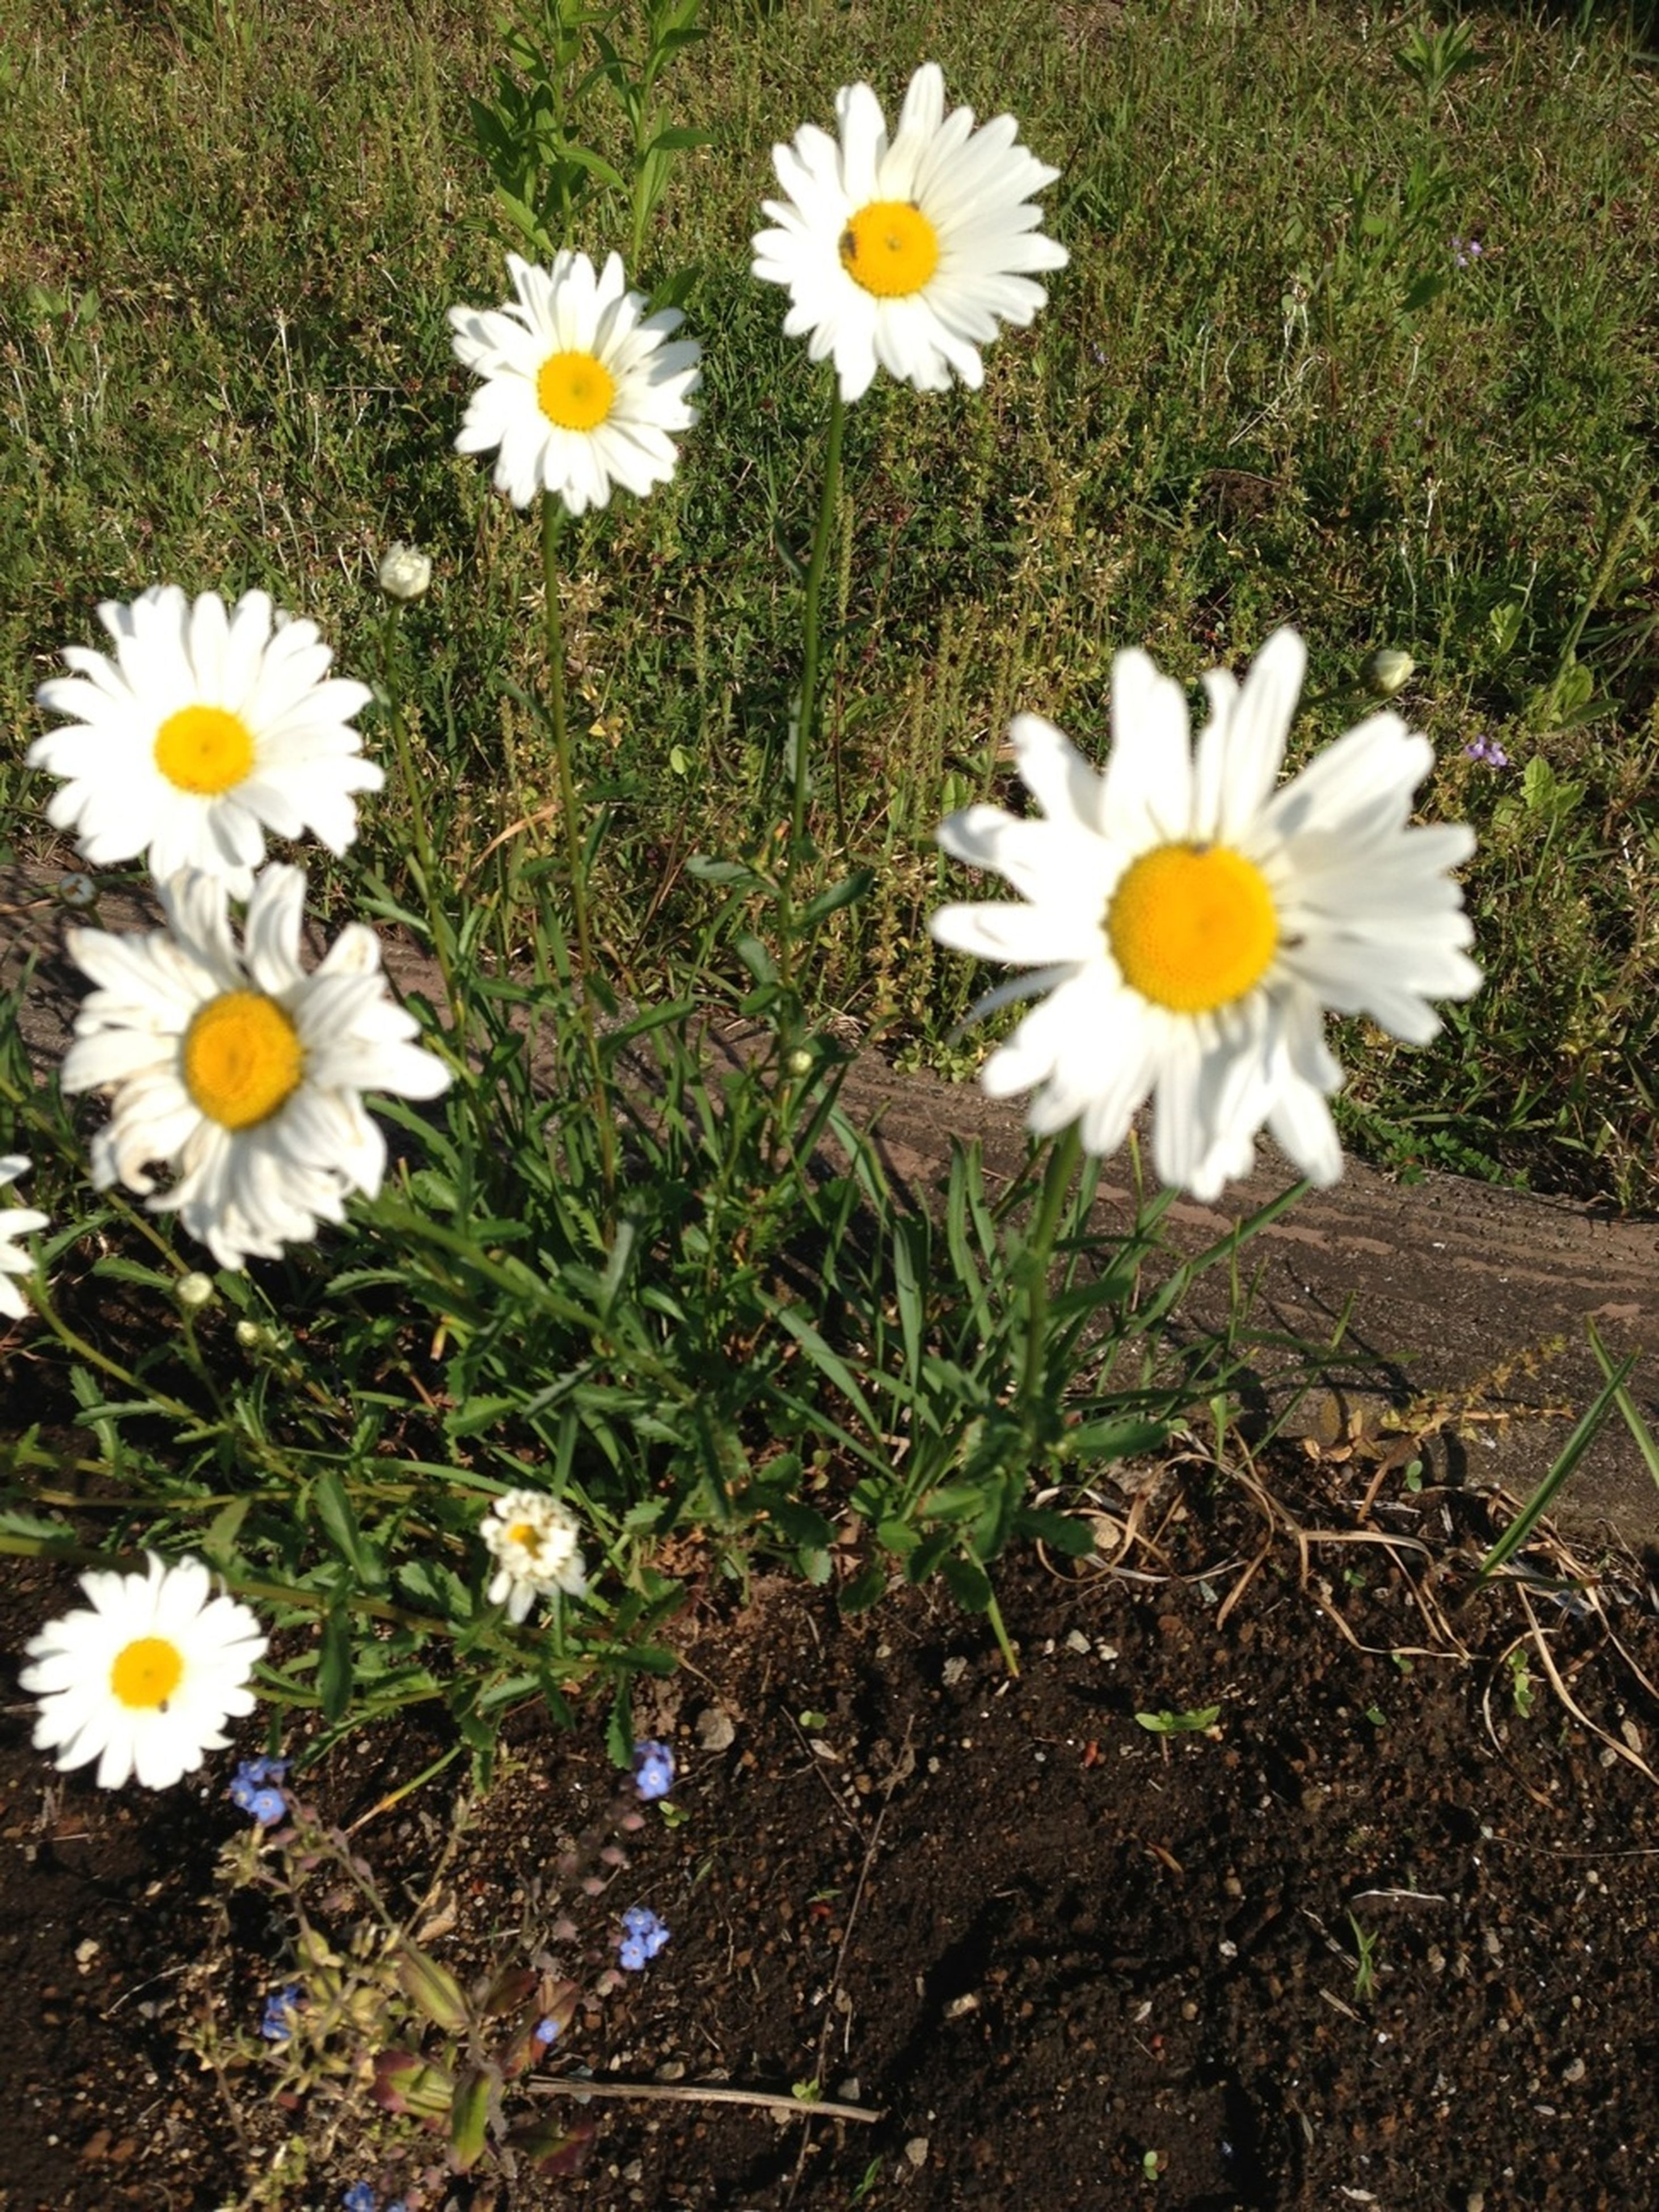 flower, freshness, petal, fragility, daisy, growth, white color, high angle view, field, flower head, beauty in nature, nature, blooming, plant, yellow, grass, wildflower, pollen, in bloom, day